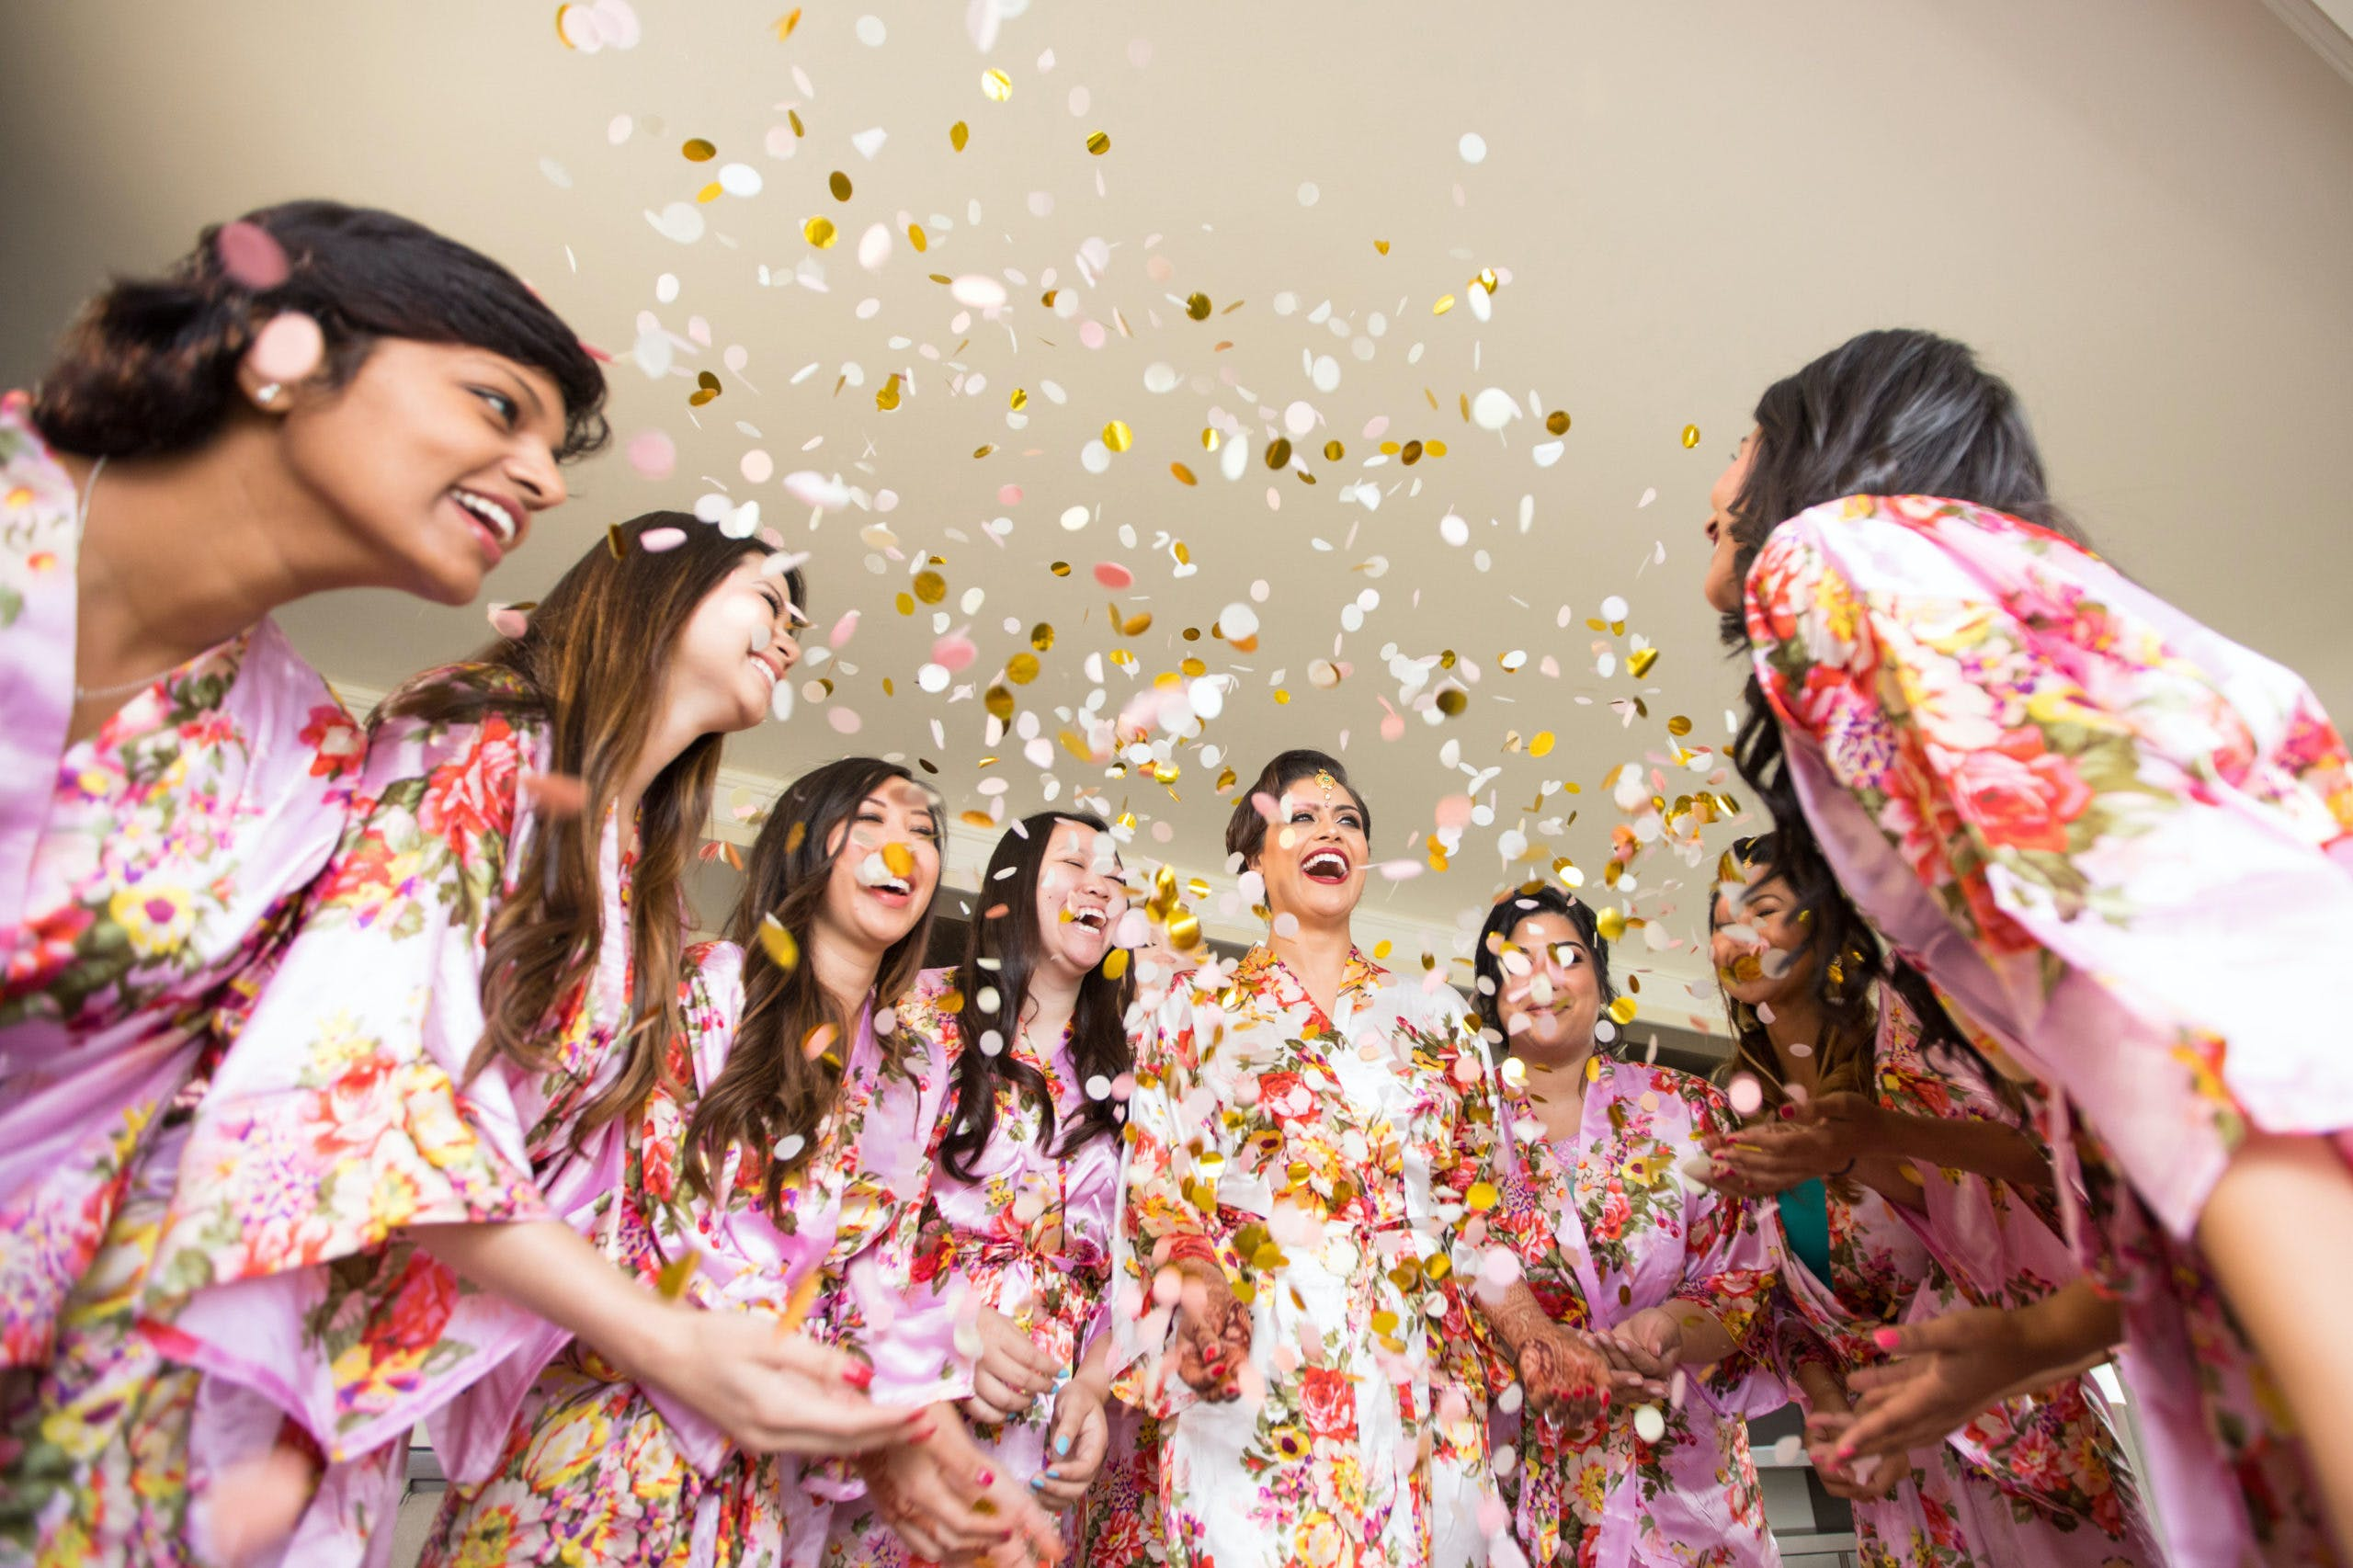 Bridesmaids huddled around in matching pajamas and confetti thrown in air   PartySlate